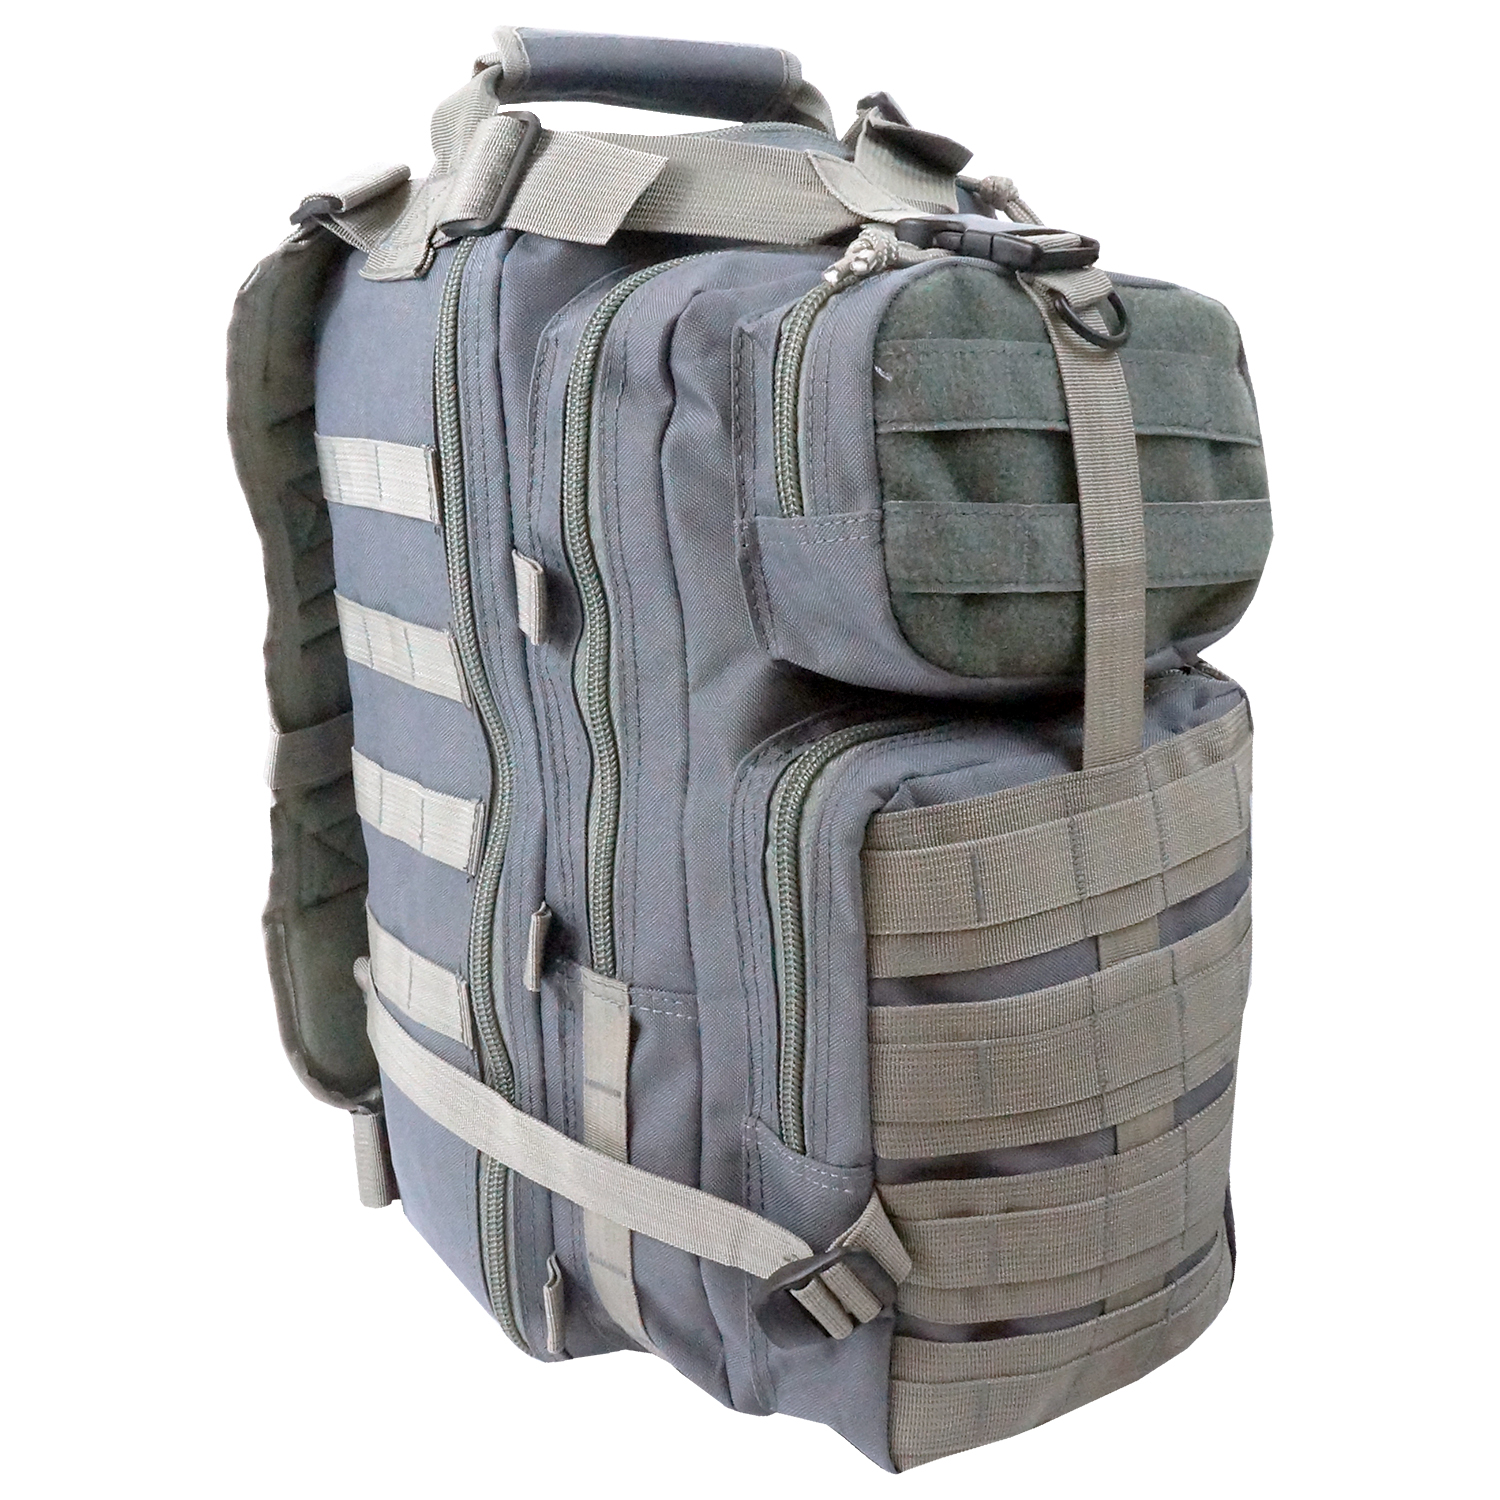 Every Day Carry Tactical Assault Bag EDC Day Pack Backpack w/Molle Webbing Gray